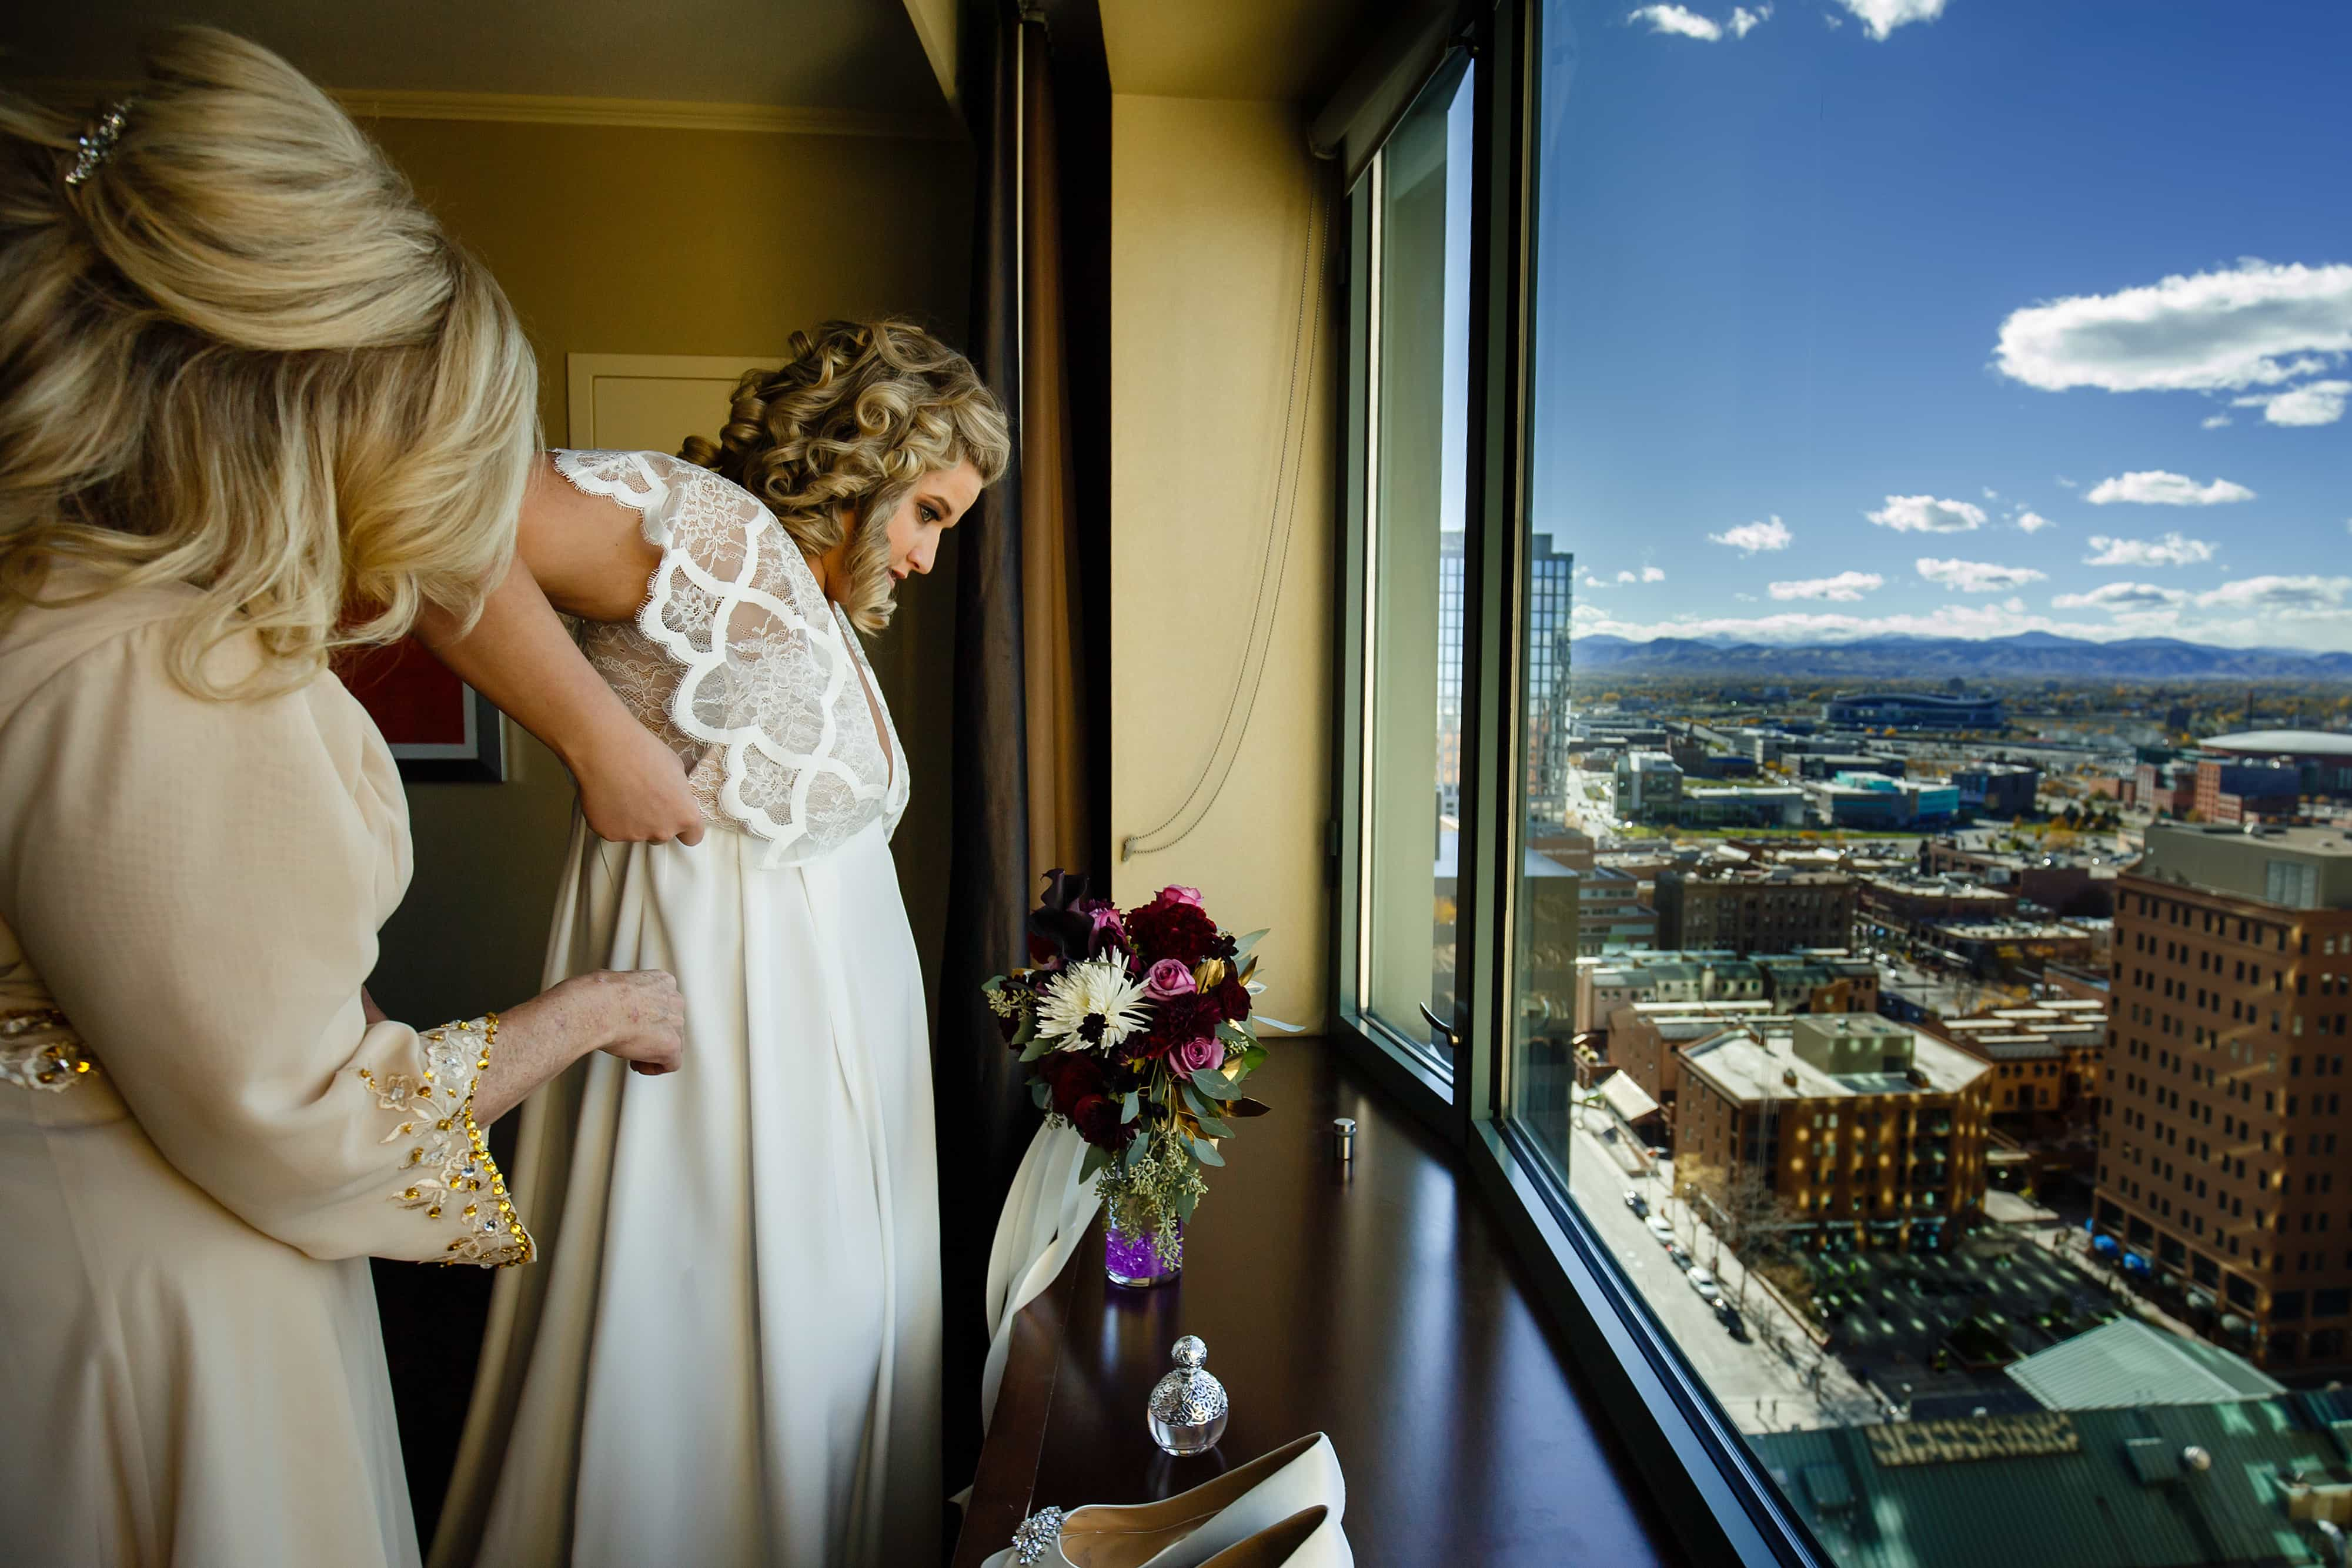 Sarah gets some help from her mother while putting on her wedding dress with a view of downtown Denver and the mountains at the Westin in Denver